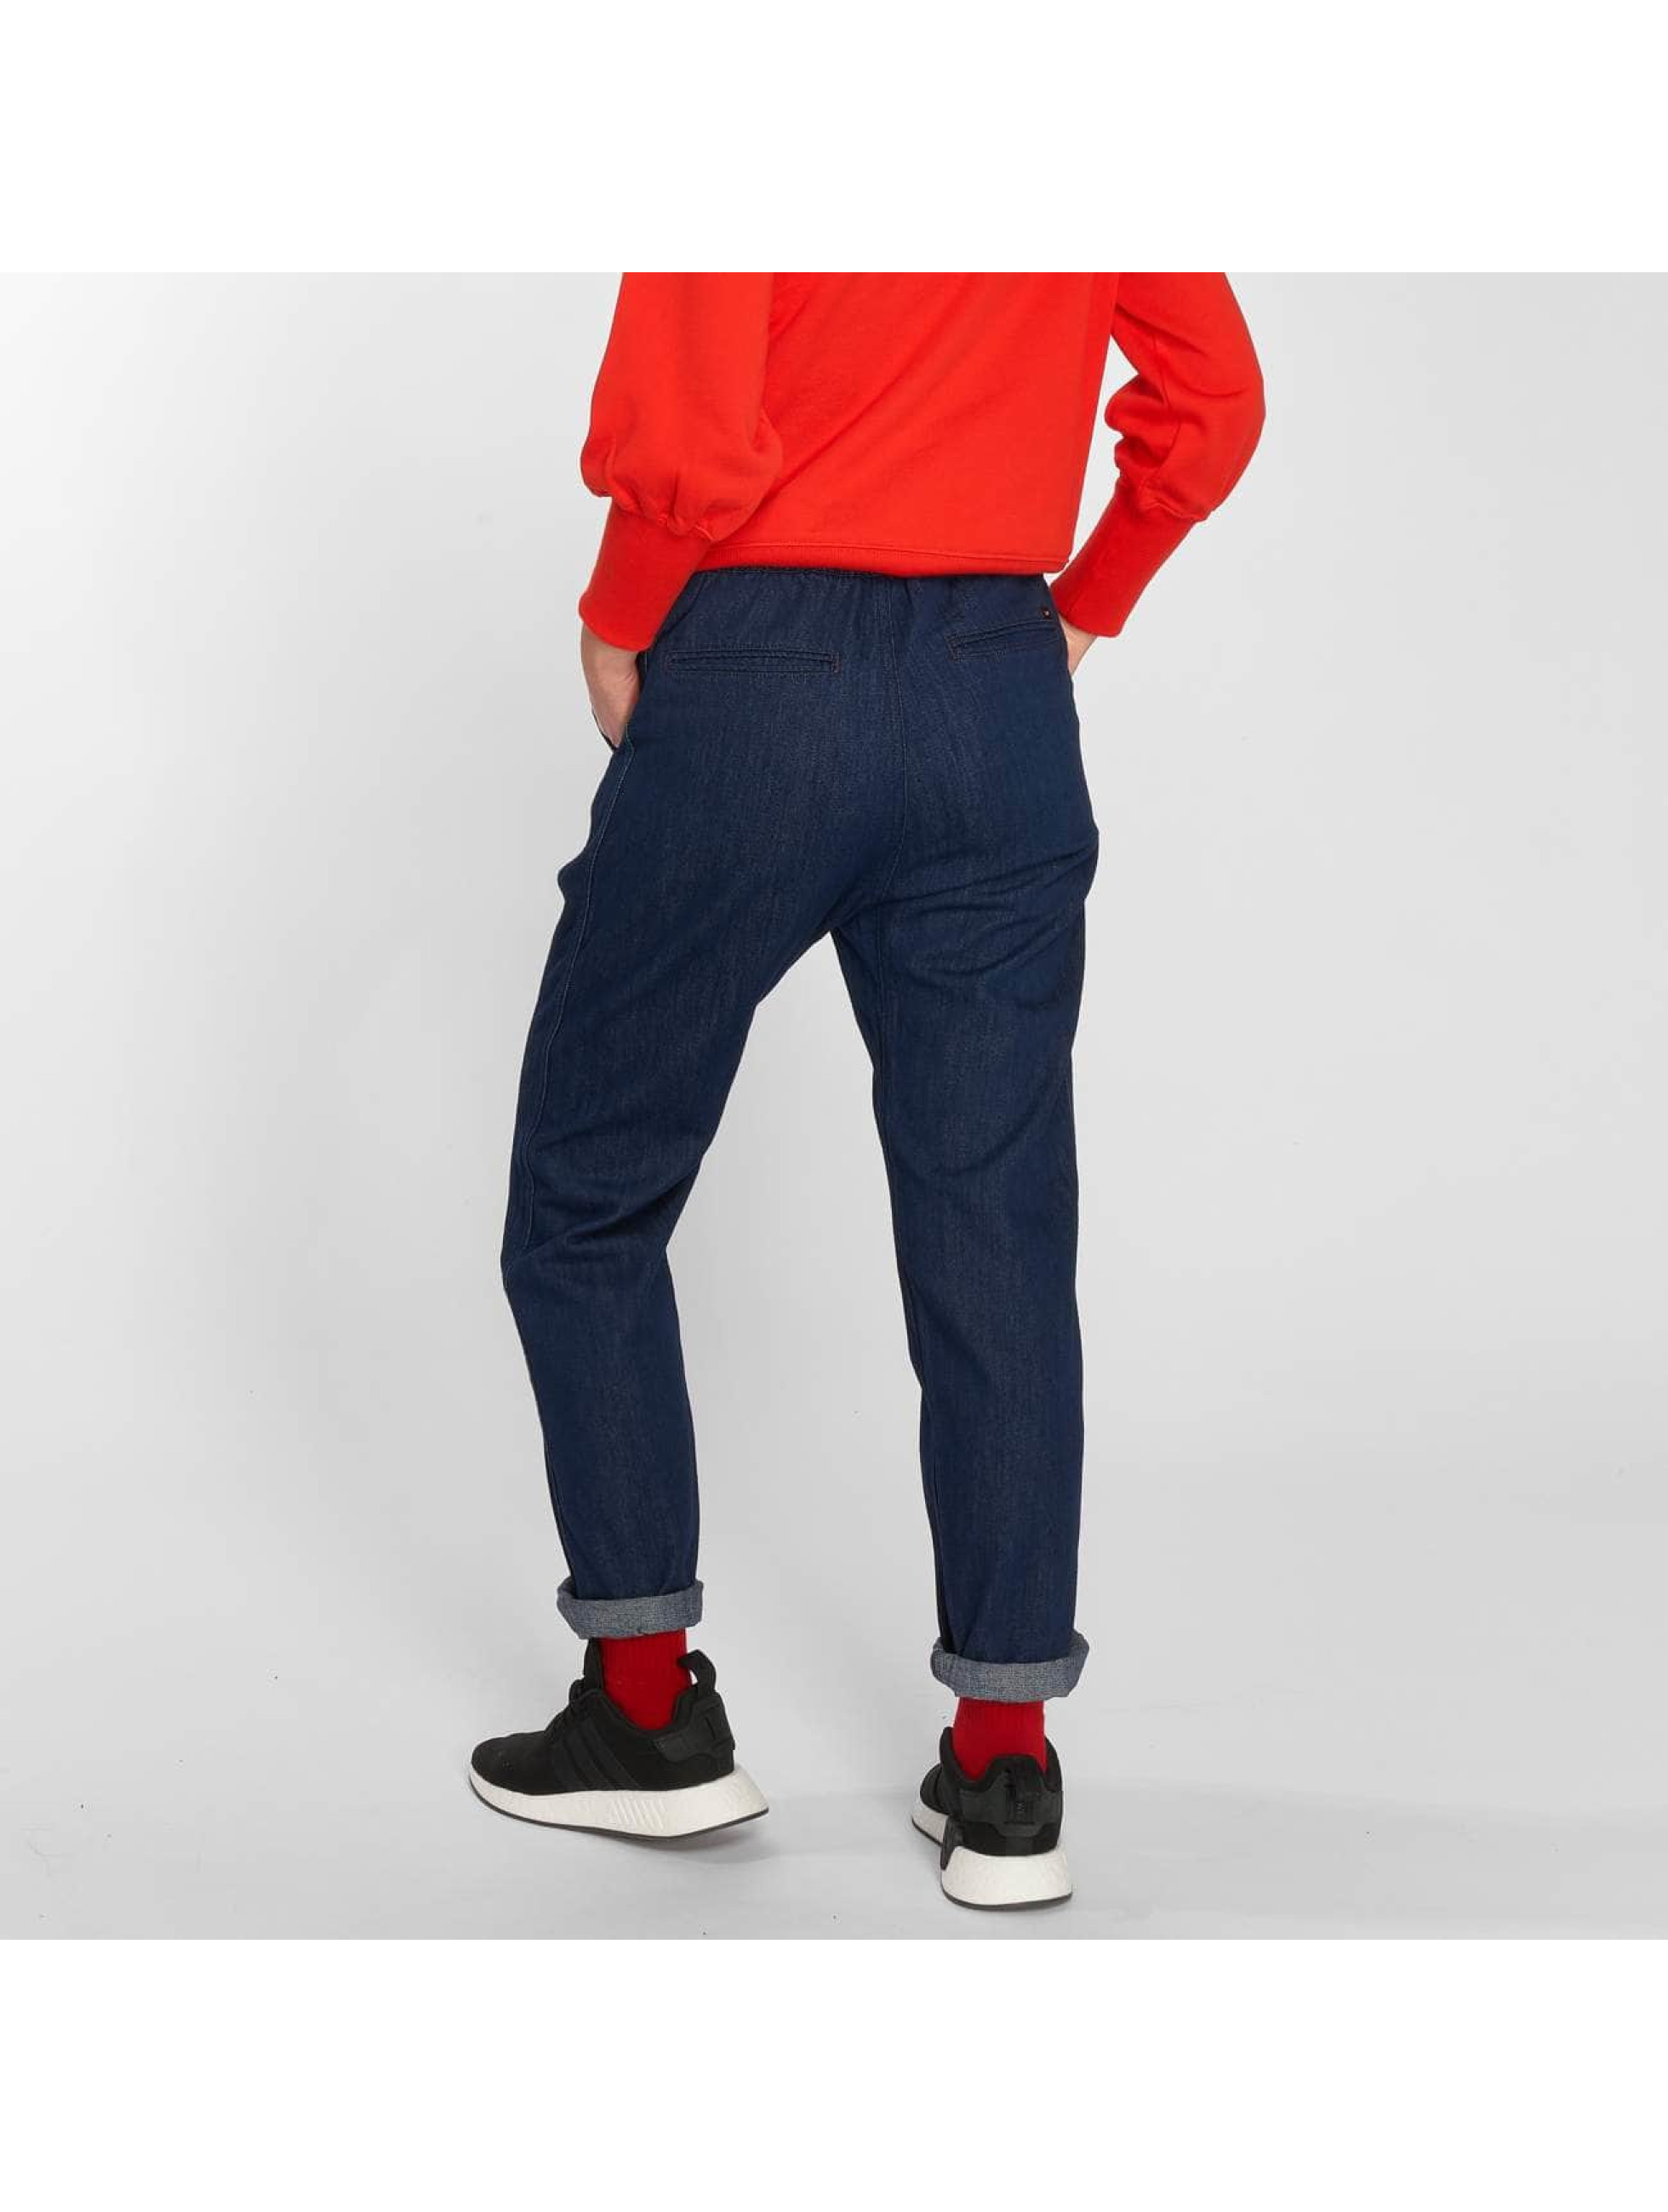 Lee Pantalon chino Track bleu